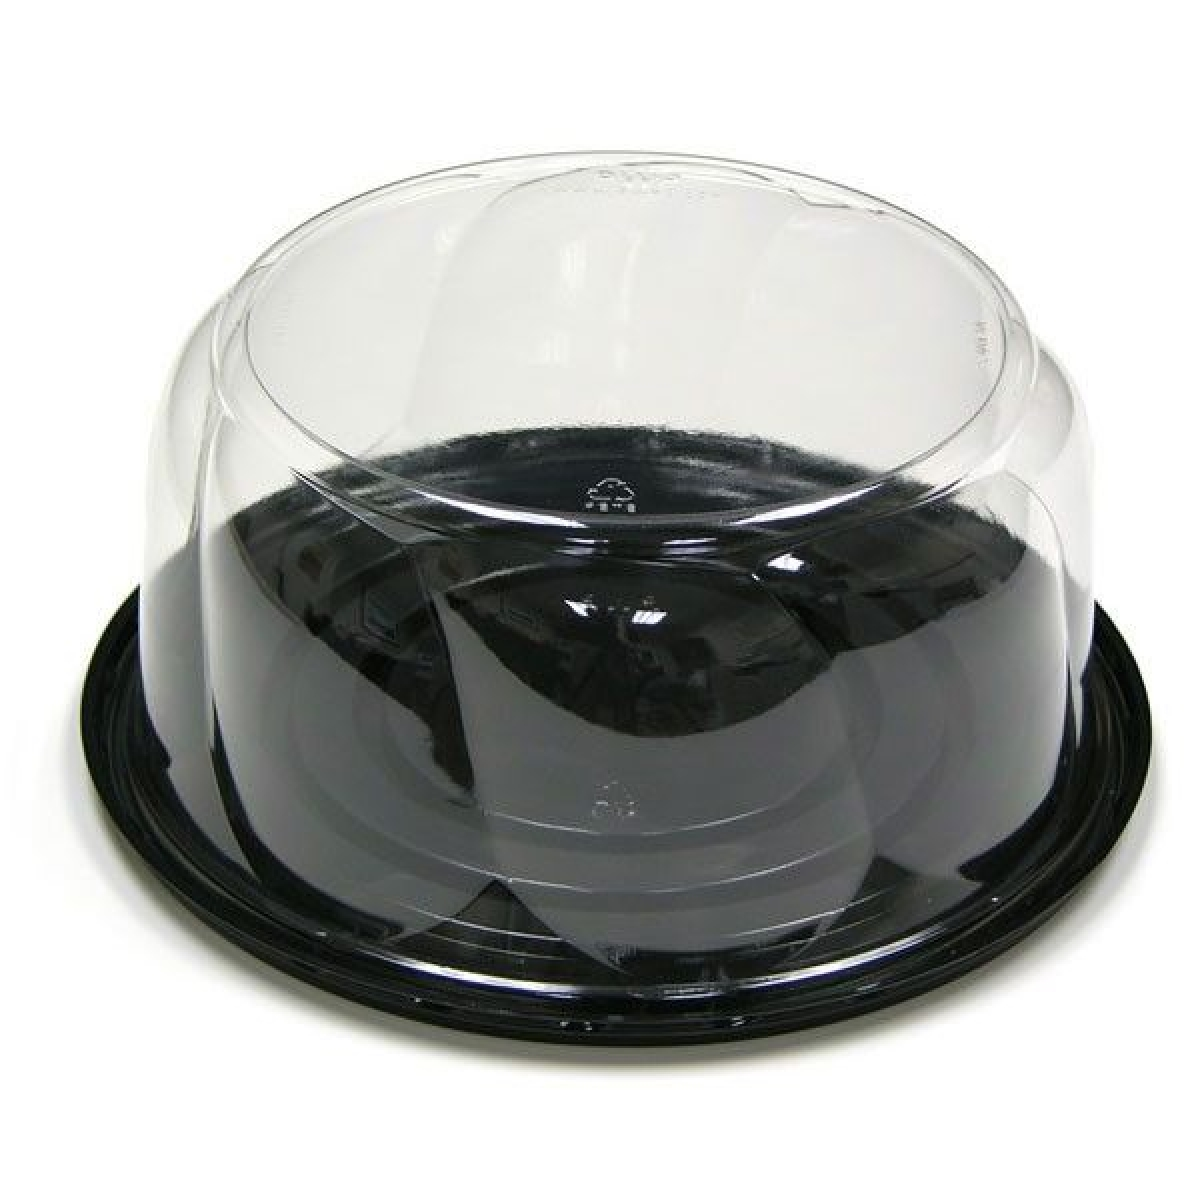 round cake countainer with black bottom 7